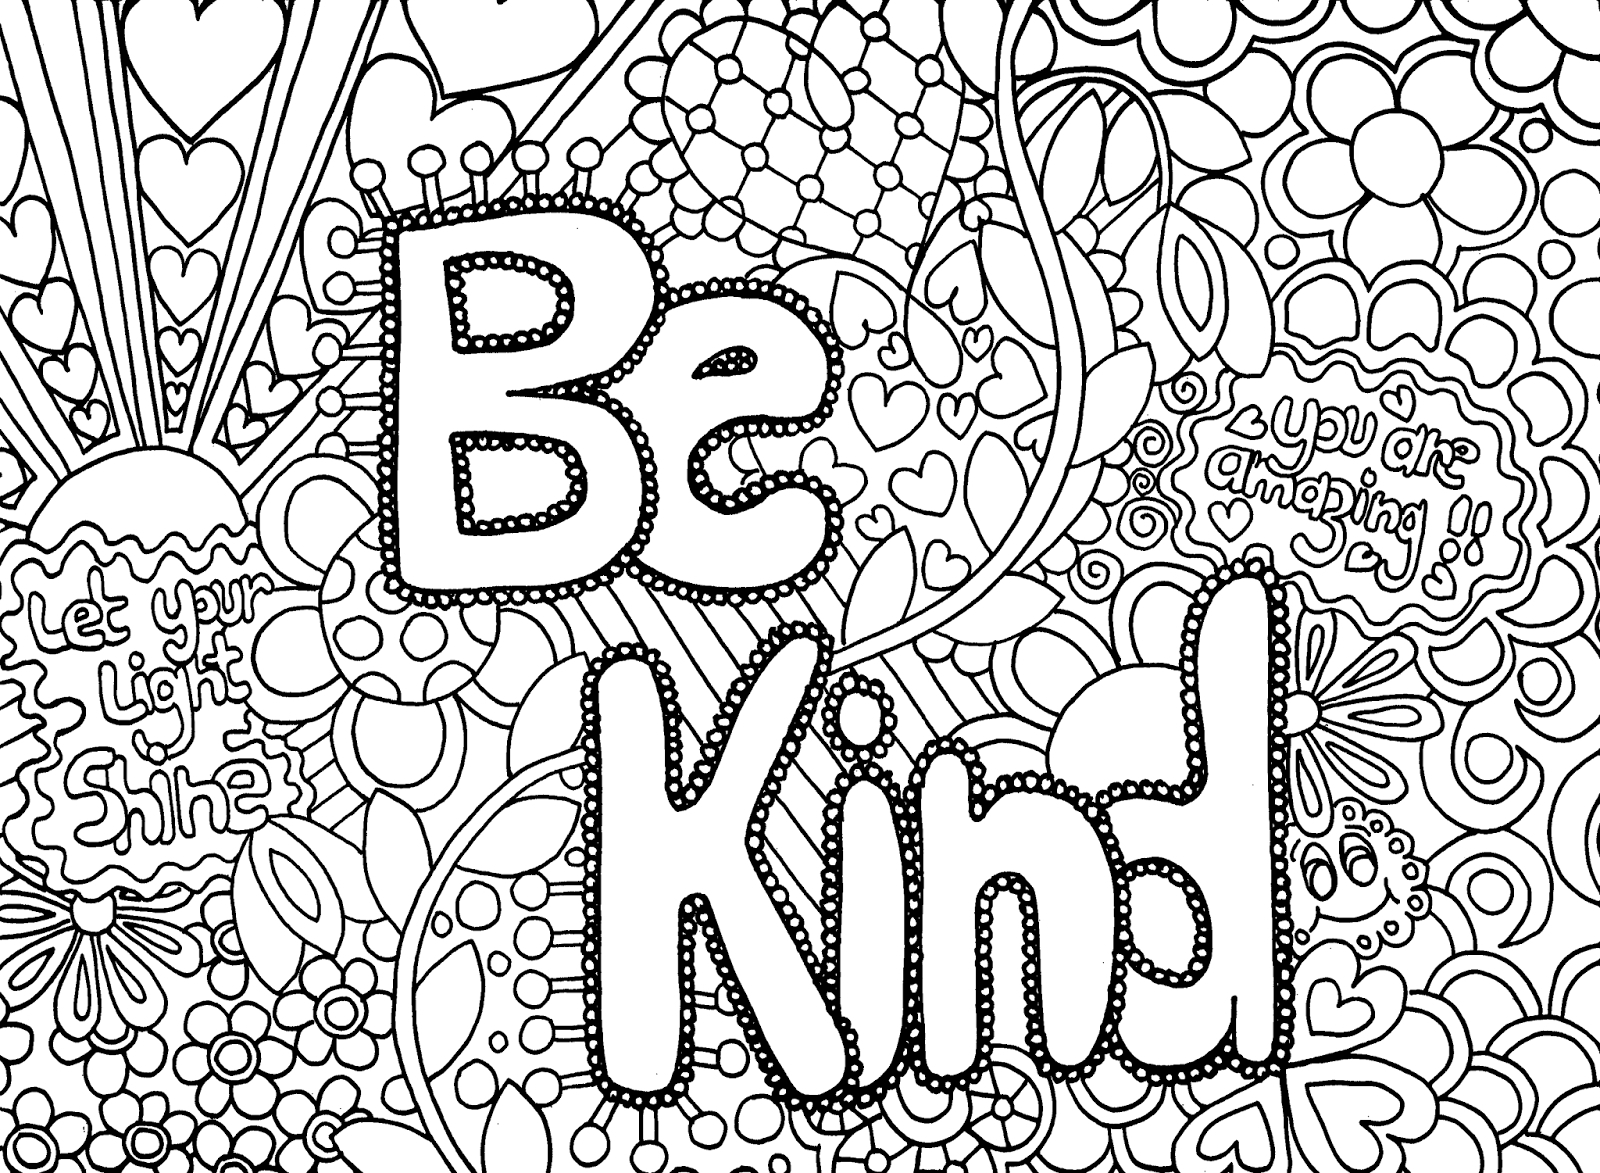 Fresh Inspirational Coloring Pages for Adults Line and Studynow to Print Of Quote Coloring Pages Coloringsuite Download